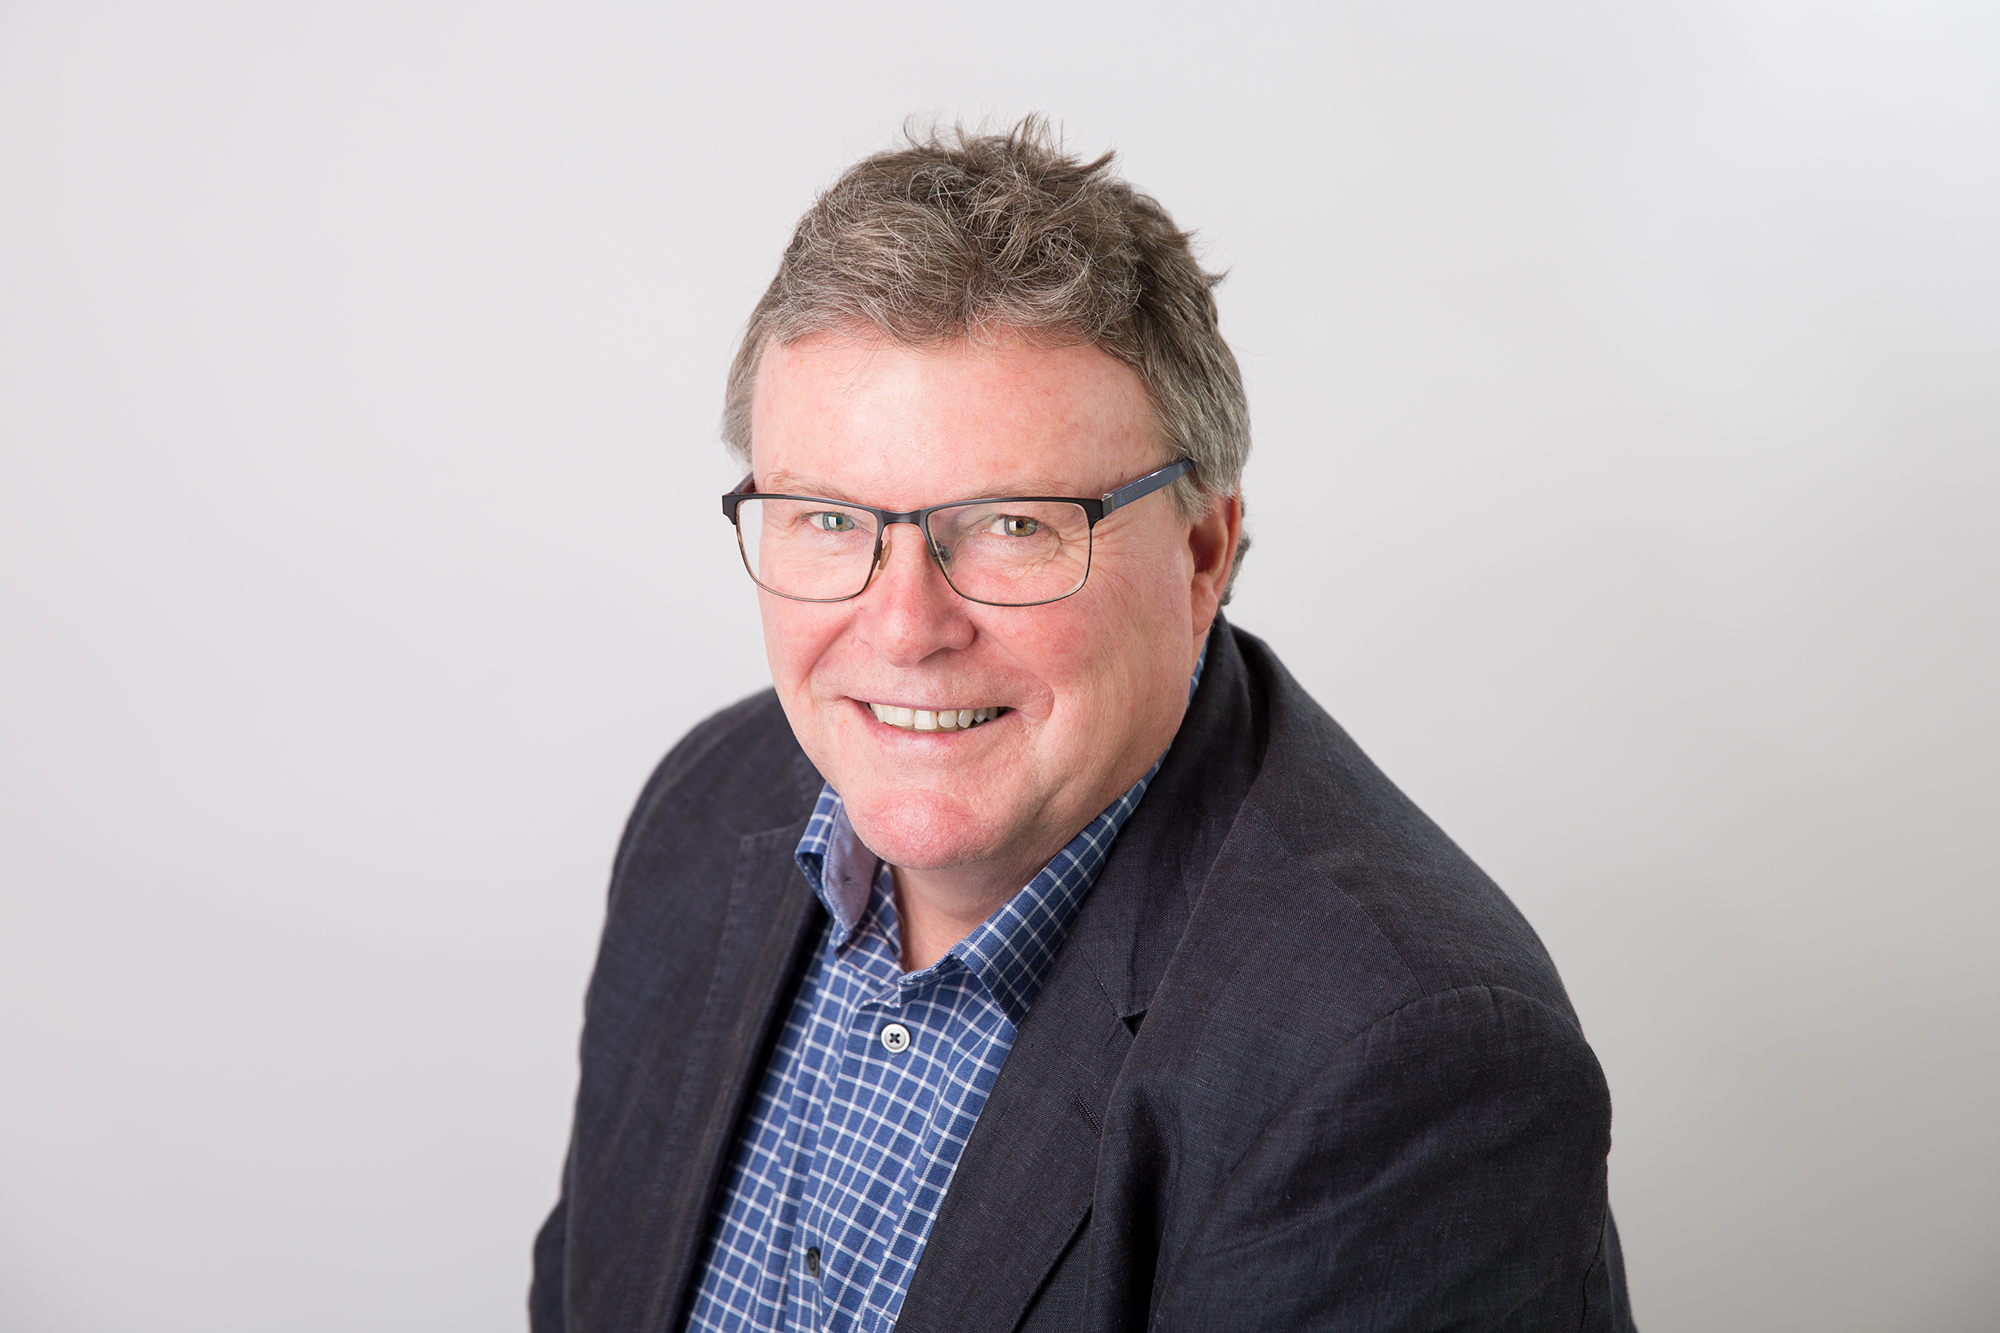 John Chisholm - With more than 25 years' experience as a leader in professional firms, I established my own consultancy in 2005 to share my expertise and experience with firms looking to move beyond the traditional firm model. This has seen me become a leading advocate for professional firms to become